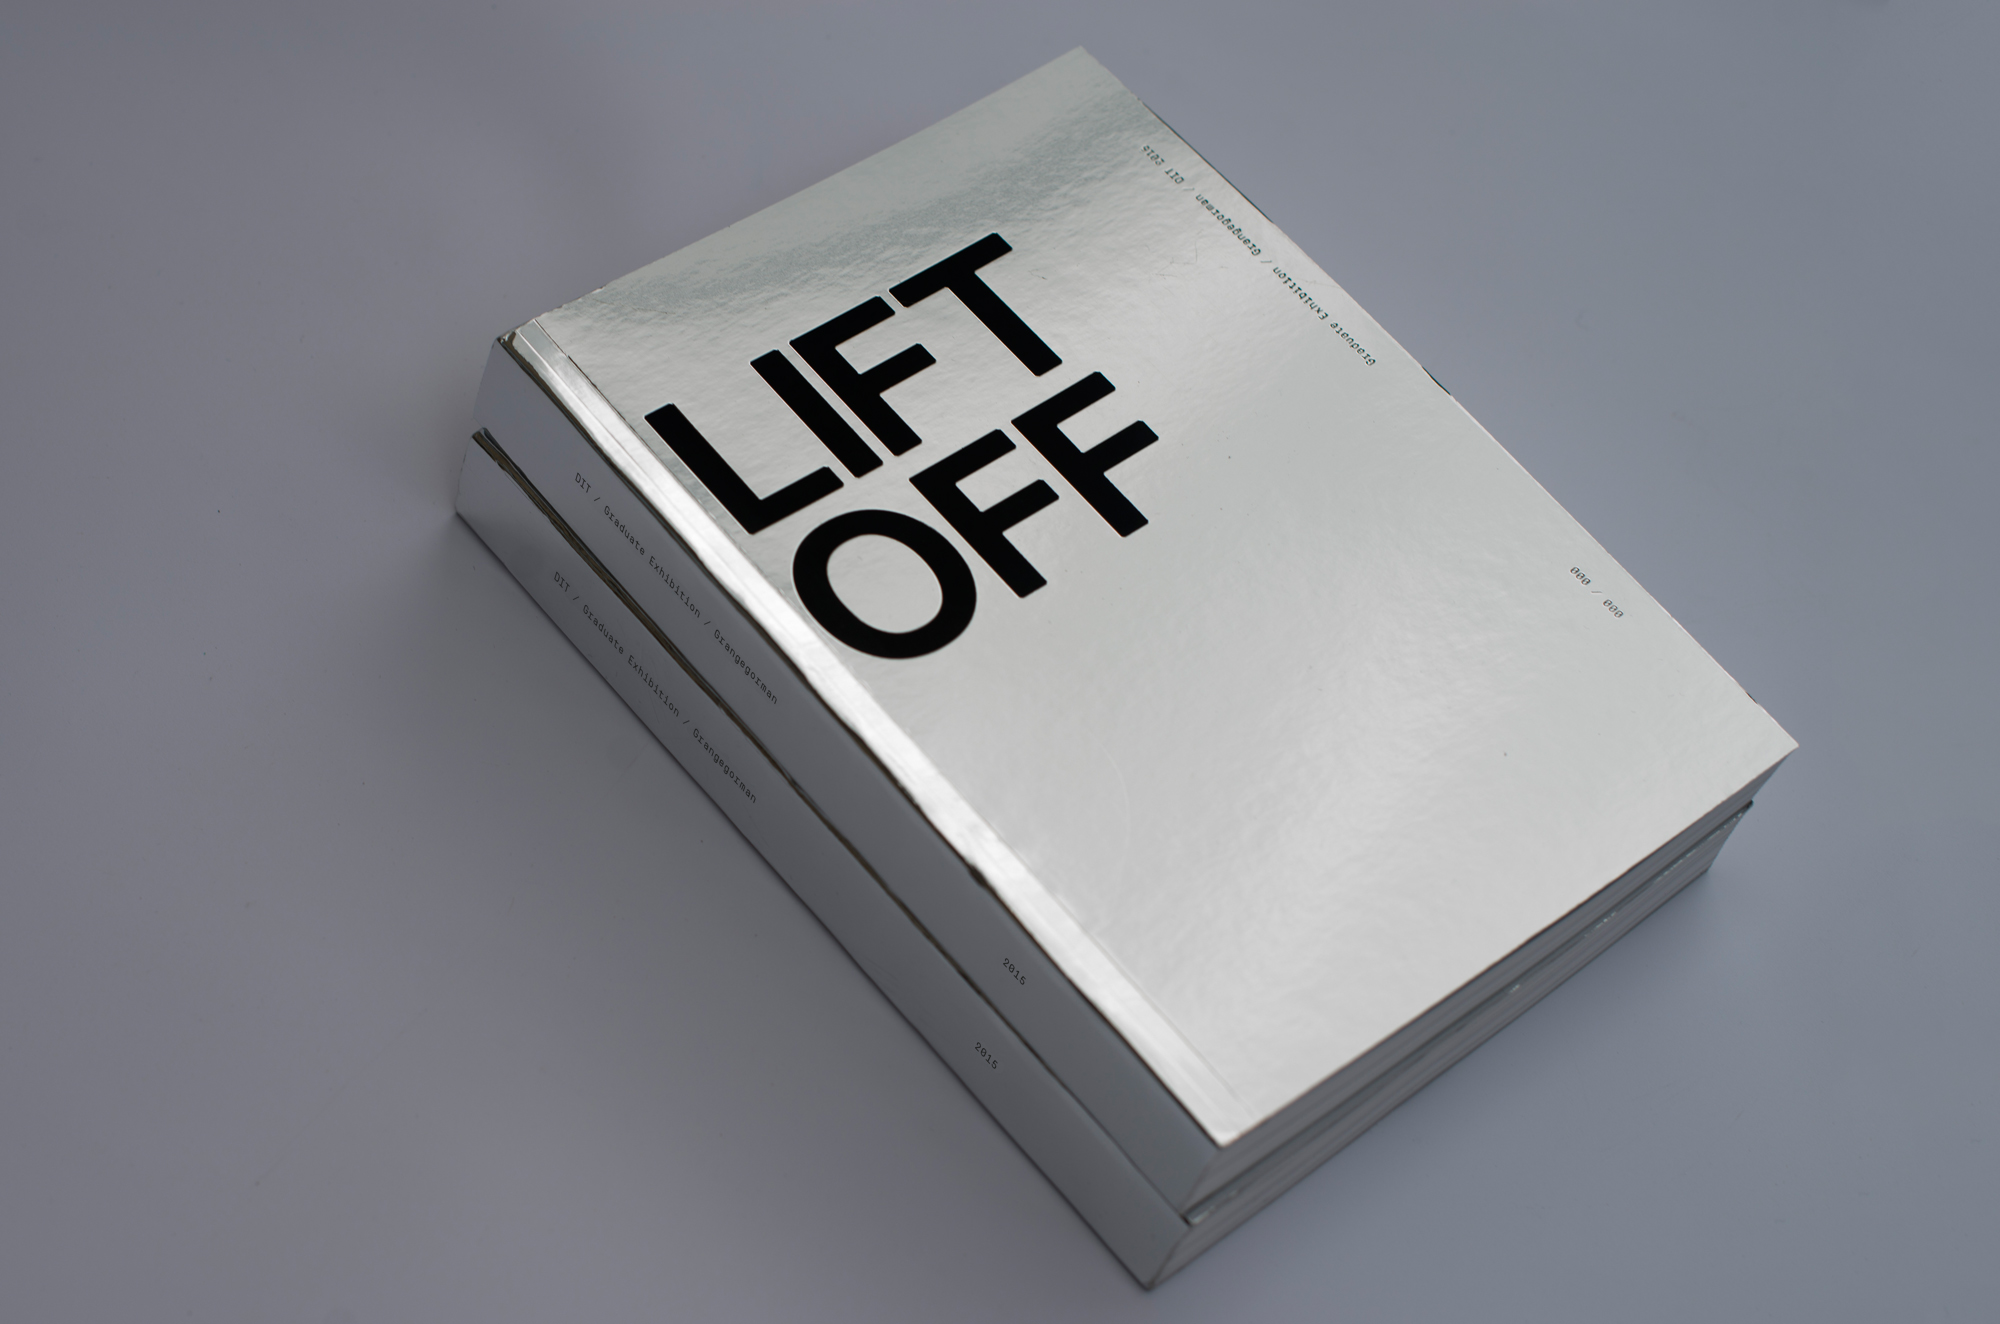 Cover image: LIFT OFF – DIT Graduate Exhibition 2015